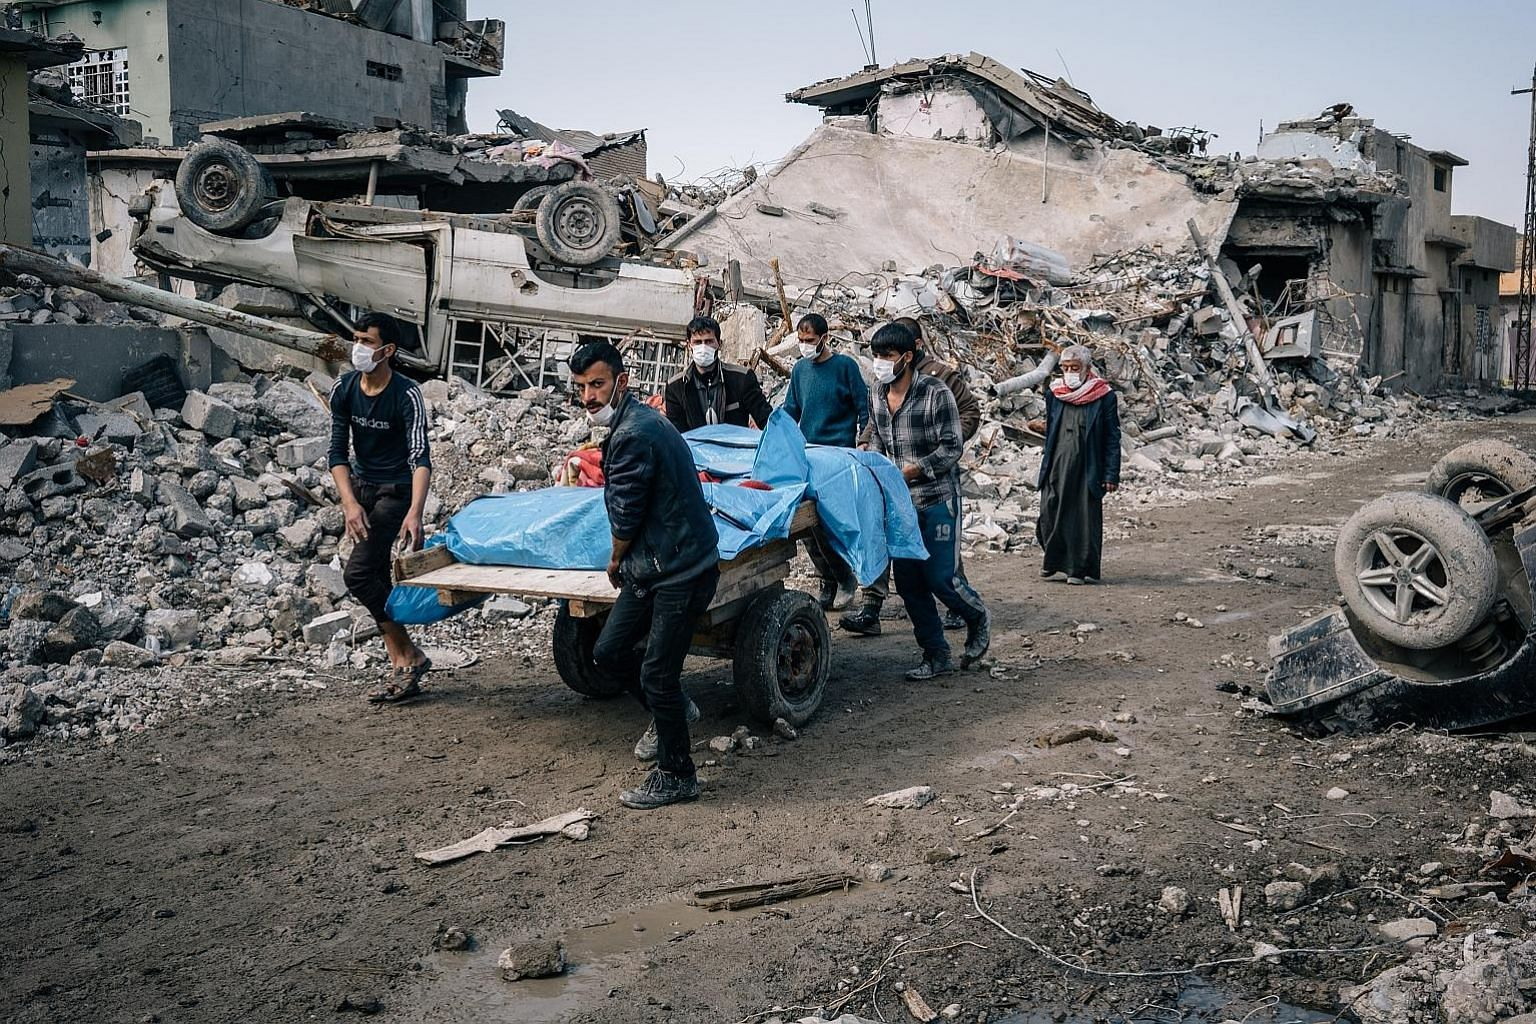 Volunteers carting away the bodies of civilians found among the rubble of a collapsed building in Mosul's al Jadida district.